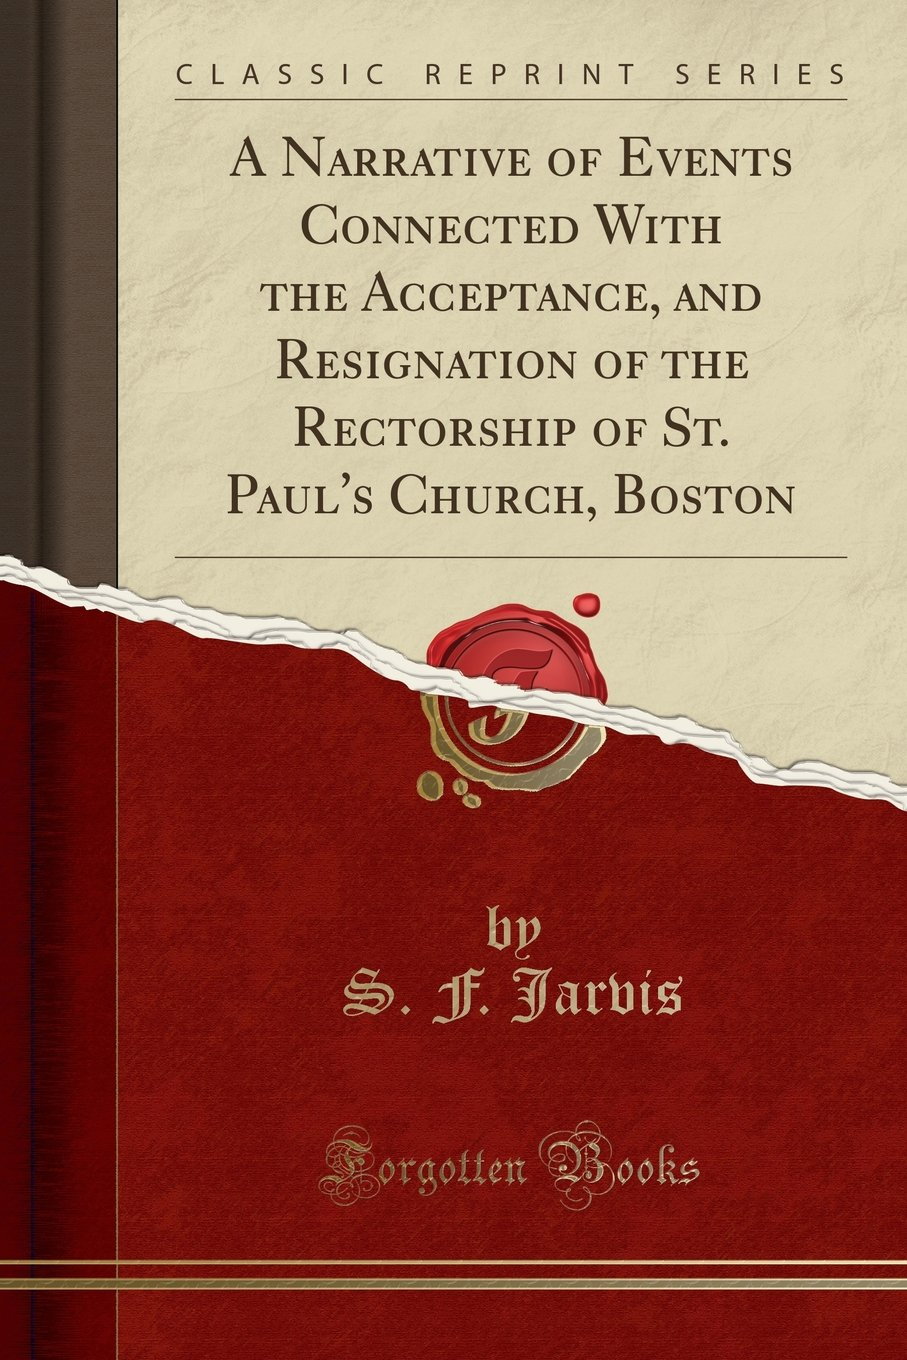 A Narrative of Events Connected With the Acceptance, and Resignation of the Rectorship of St. Paul's Church, Boston (Classic Reprint) ebook